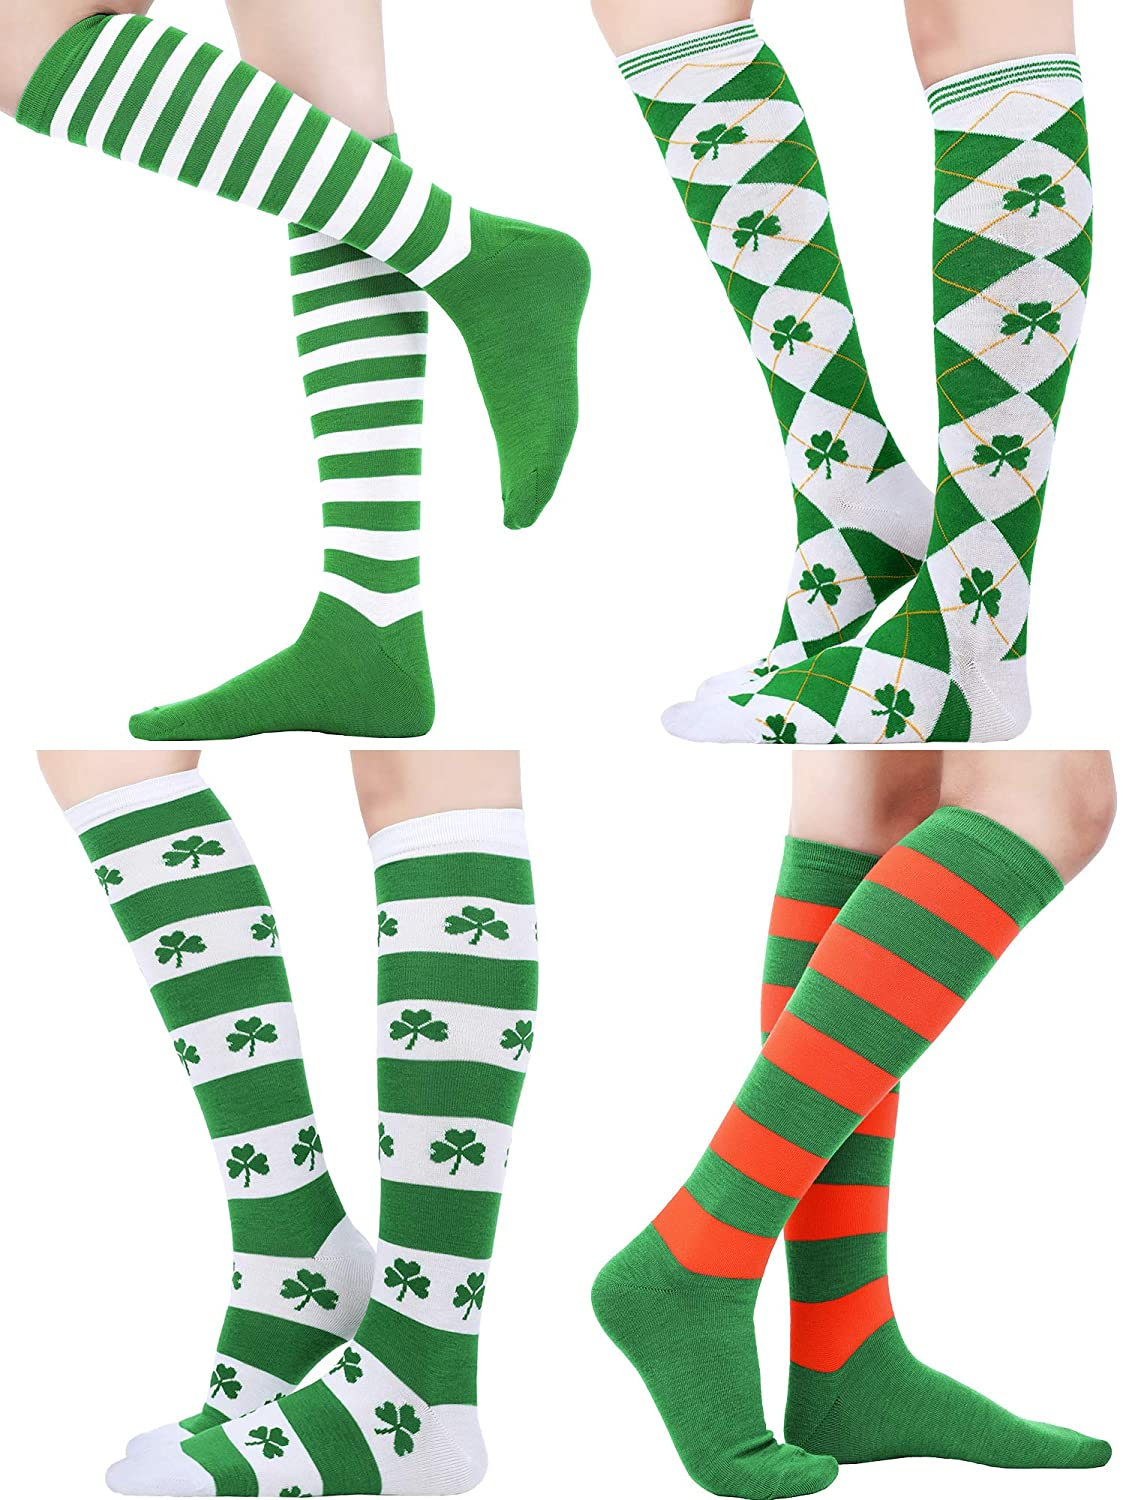 4 Pairs Christmas Opaque Over Knee Socks Striped Thigh High Stocking for Christmas Costume Party, 4 Styles